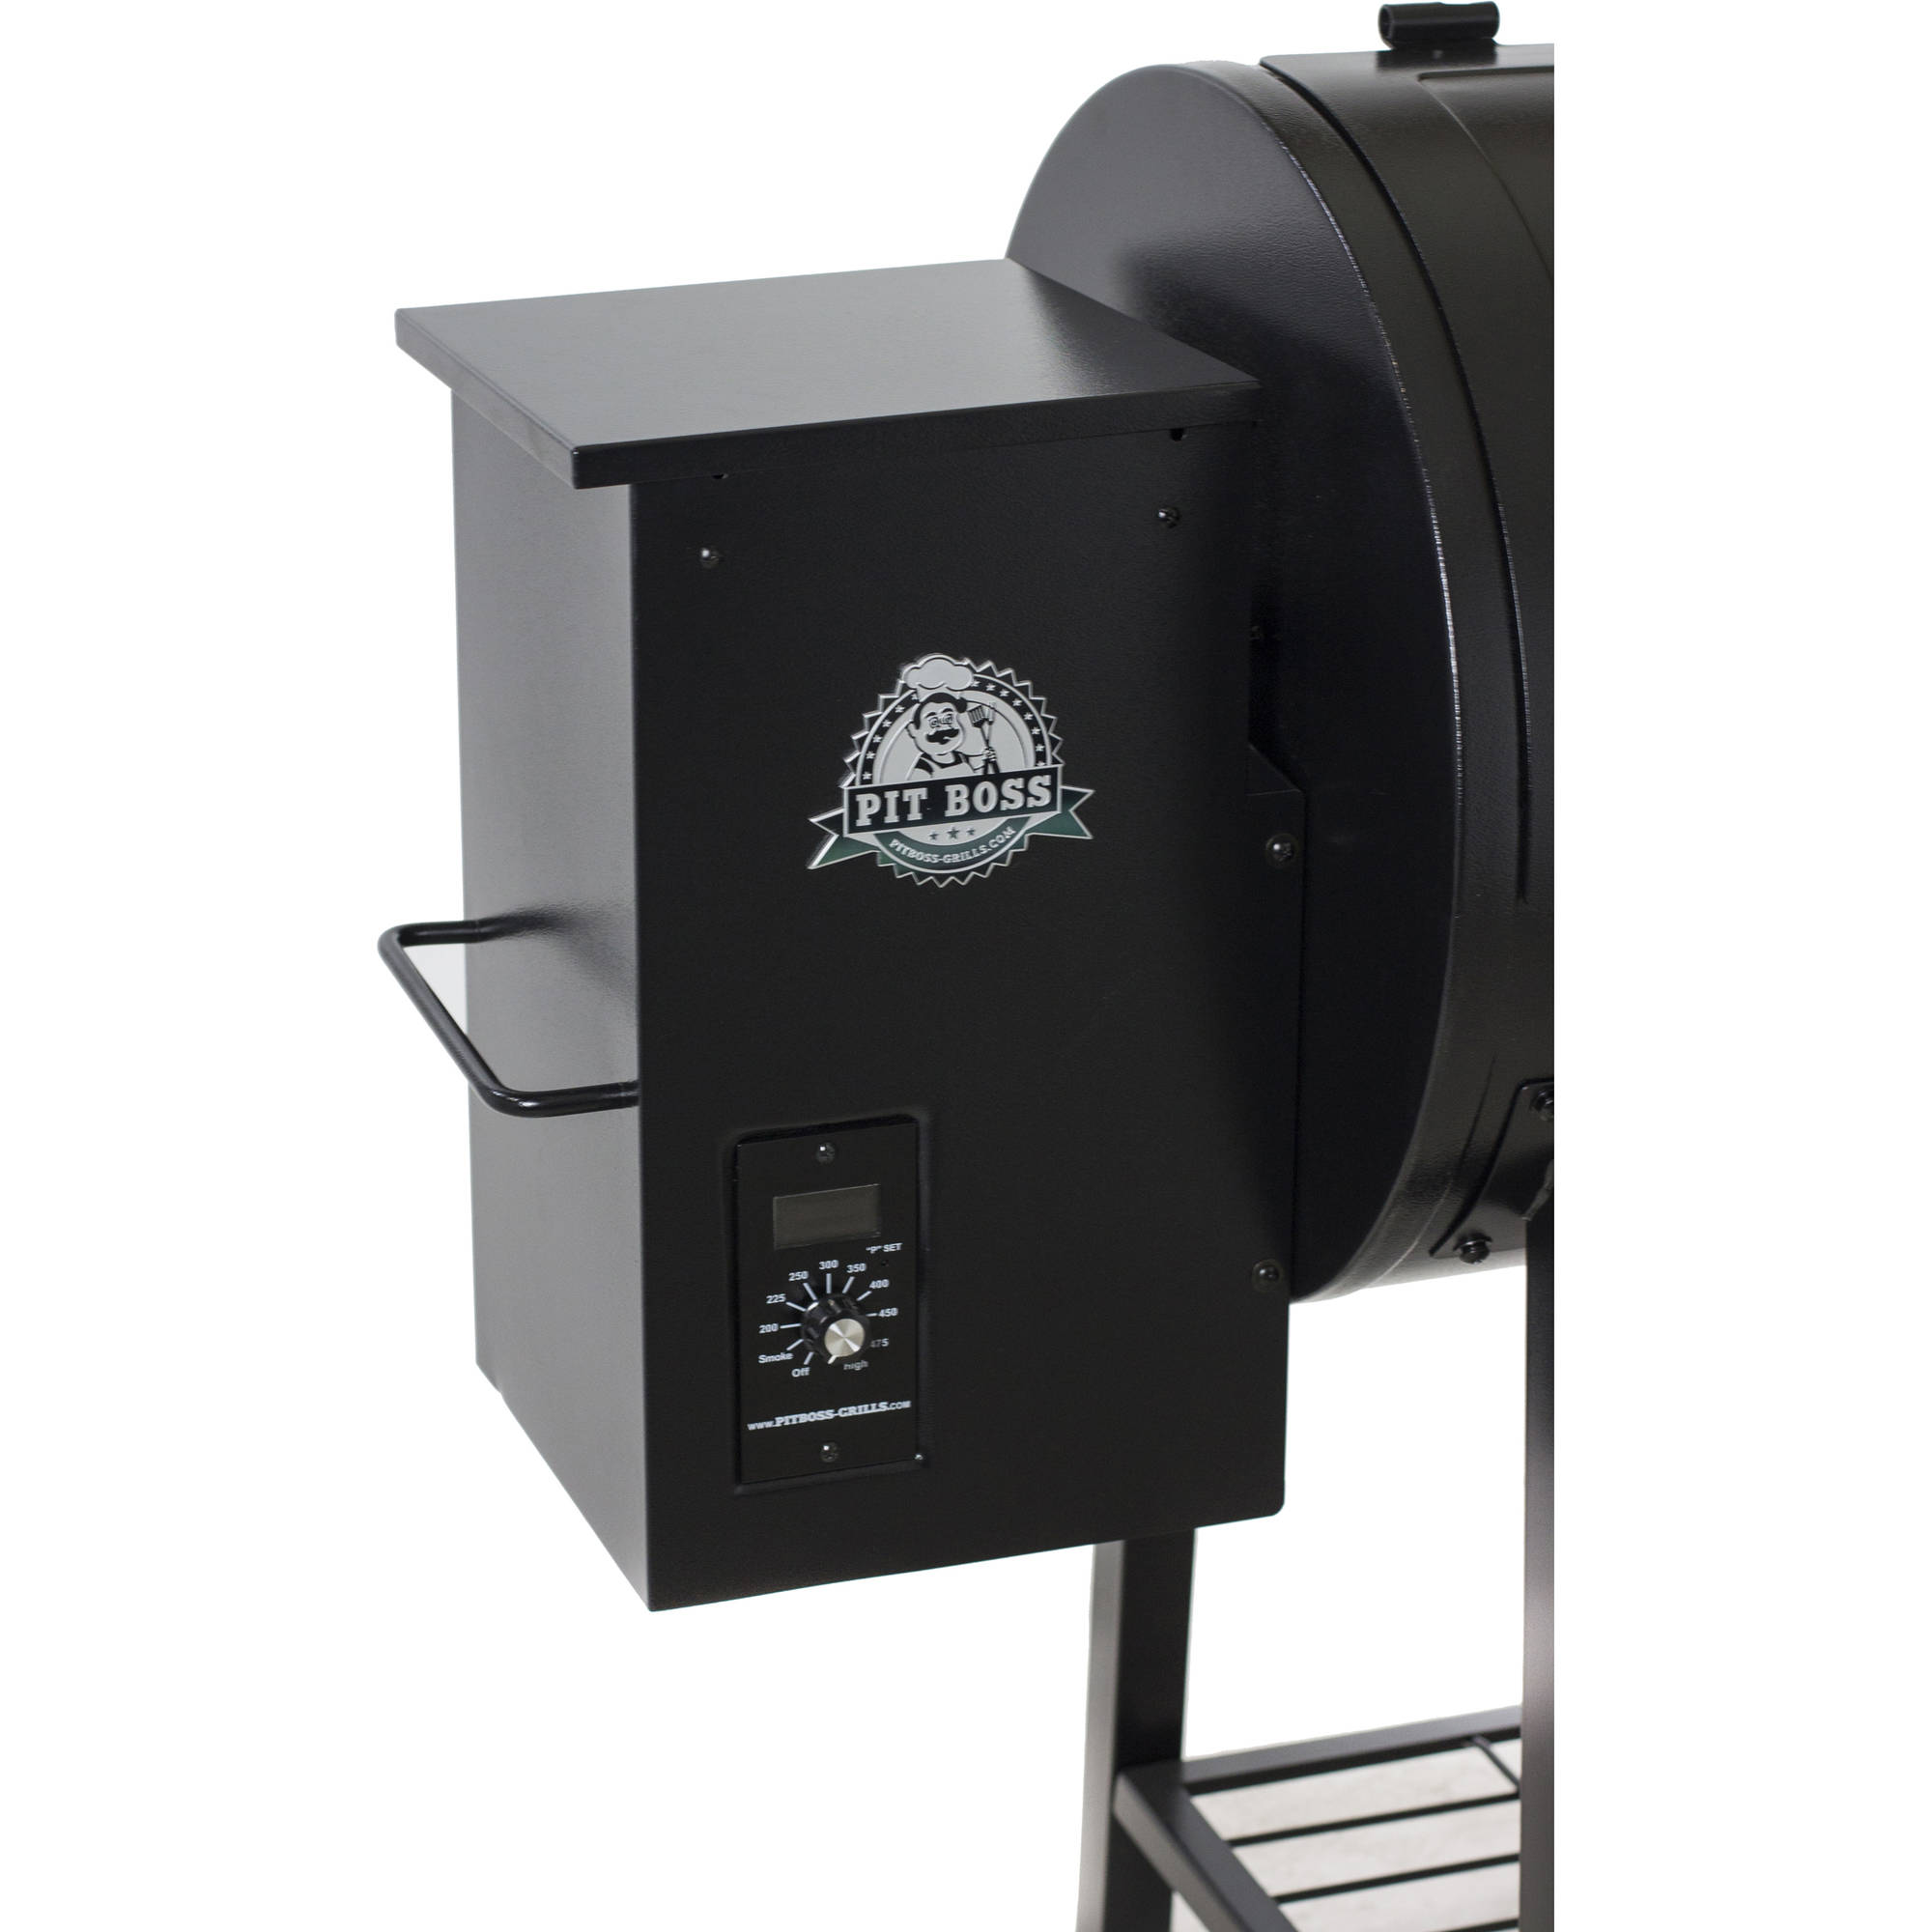 Pit Boss 700fb Wood Fired Pellet Grill W Flame Broiler